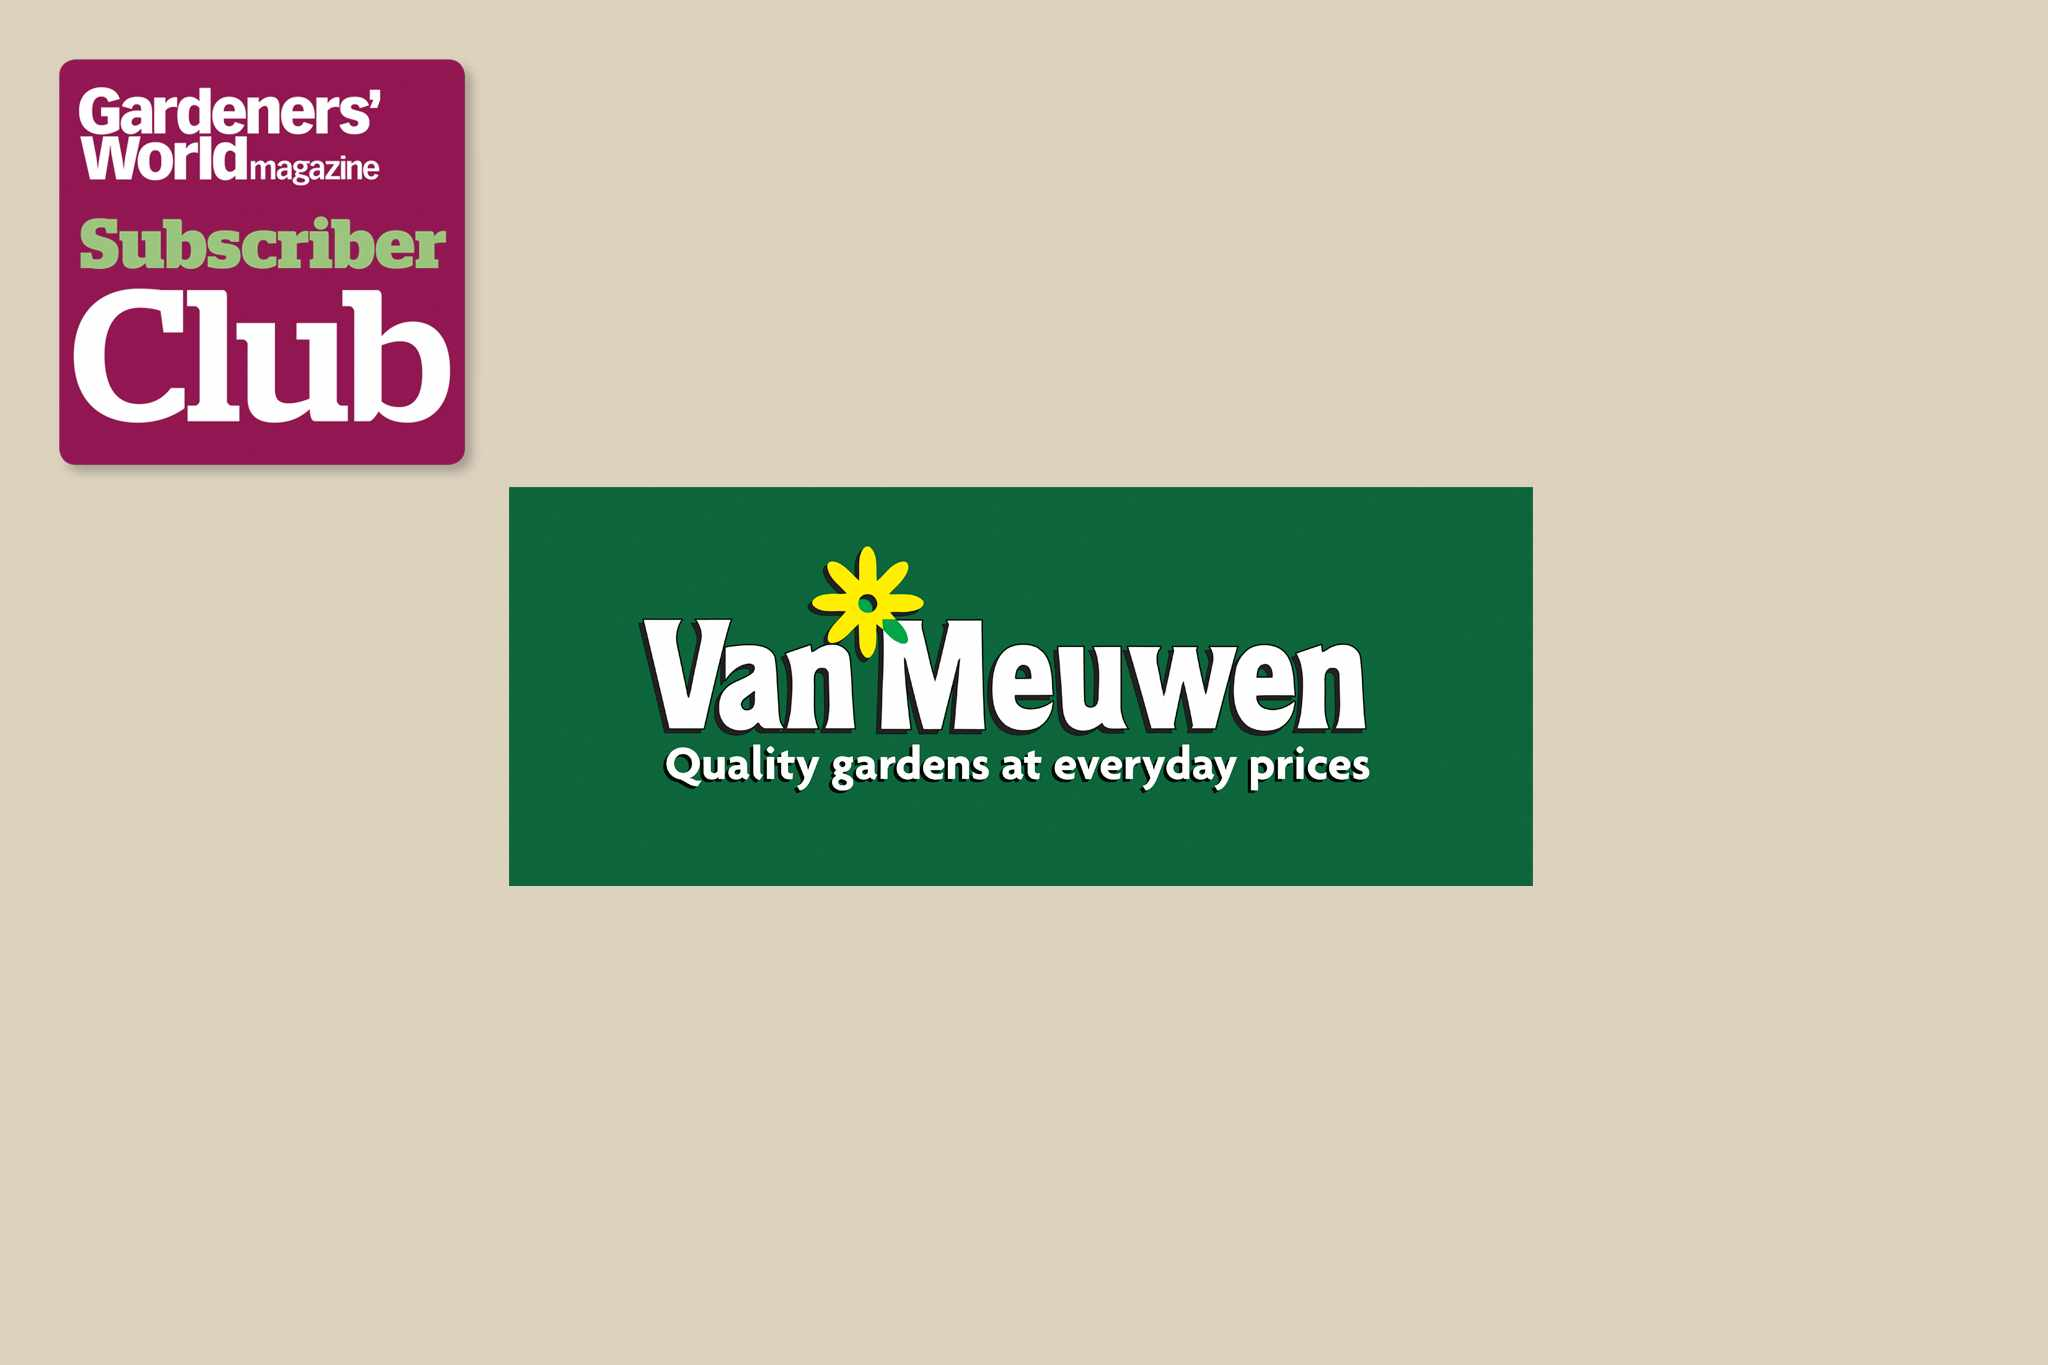 Van Meuwen BBC Gardeners' World Magazine Subscriber Club discount